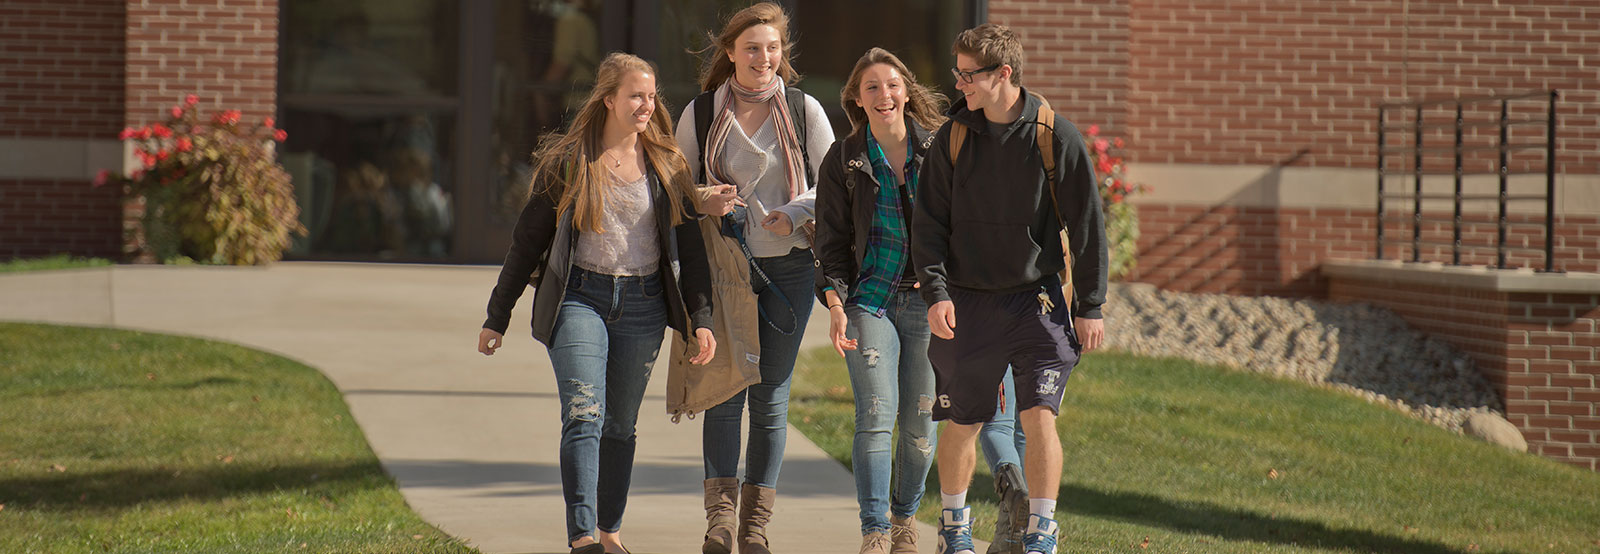 Group walking on campus